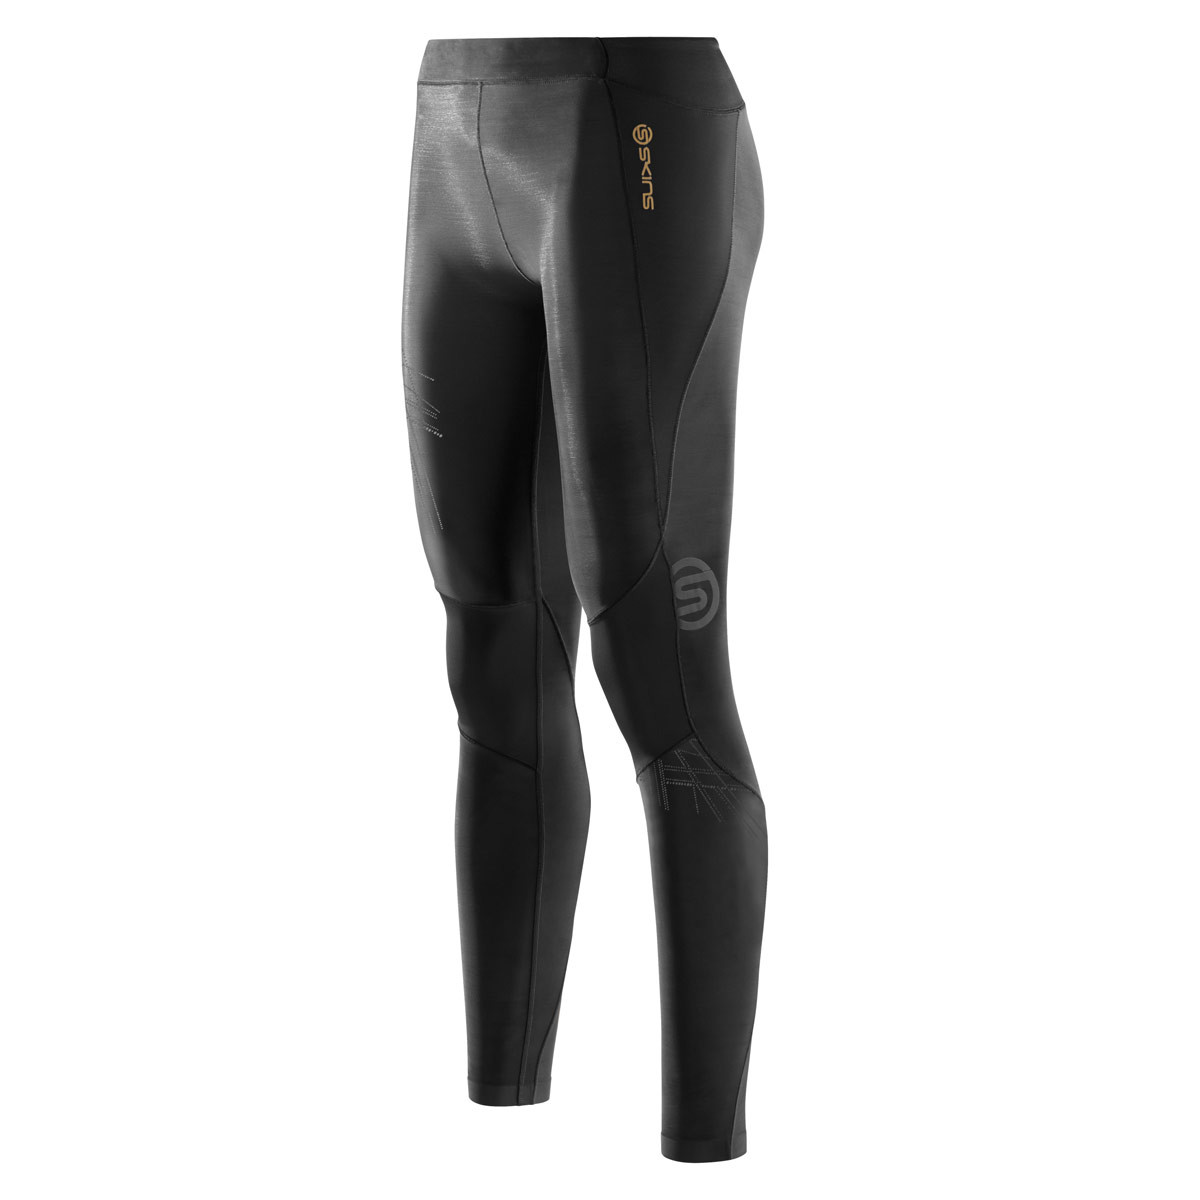 6af63e7aa9 Skins A400 Starlight Long Tights - Running trousers for Women - Black |  21RUN